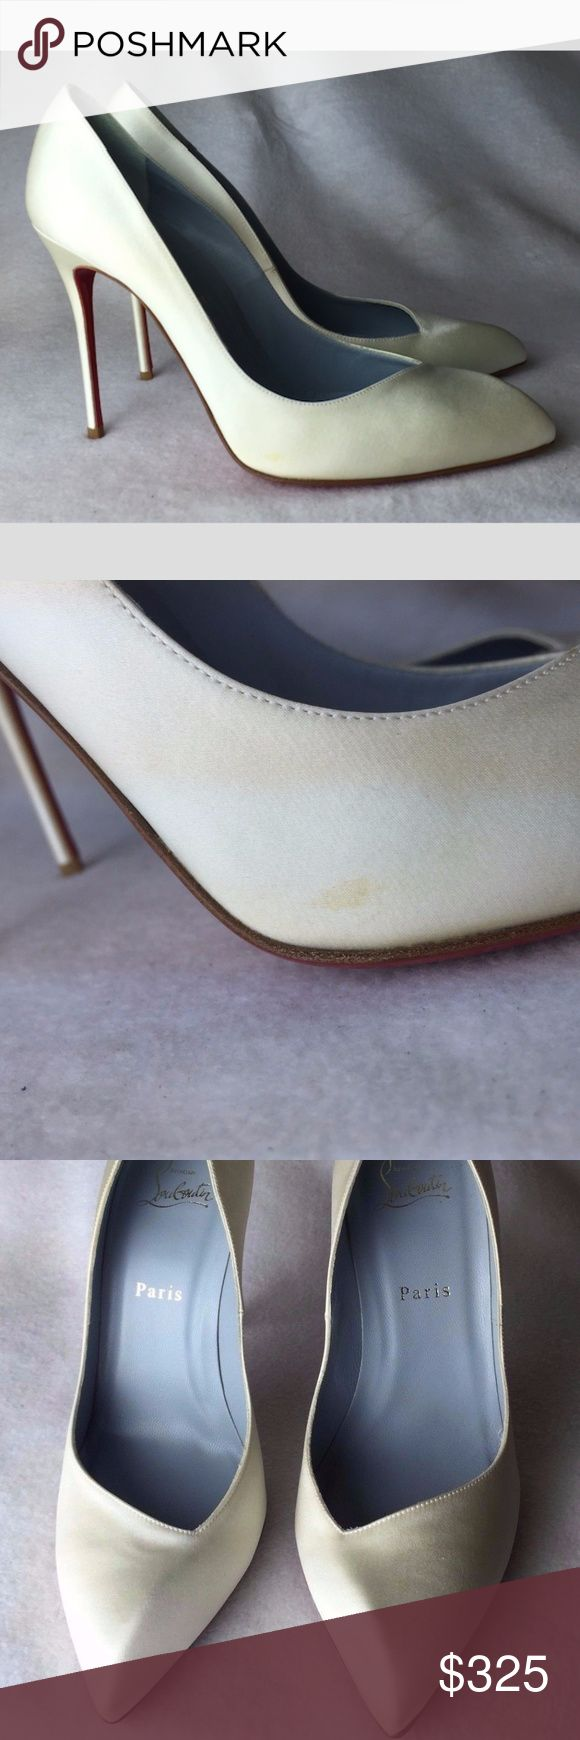 """FLASH SALE⚡️NO OFFERS⛔ Louboutin Corneille 39.5 Never worn, but have one small yellow spot on the side of one shoe. Not visible in wear at all.  Some dents / scuffs on the bottoms from trying ons. Come with original dust bag only, NO box and extra taps. No receipt is kept.  Heel is 4.33"""" Insole is 10.23""""  Please note, that European designer shoes typically run smaller then US designers. You should know your size in the particular designer's shoes before making a purchase. Christian Louboutin…"""